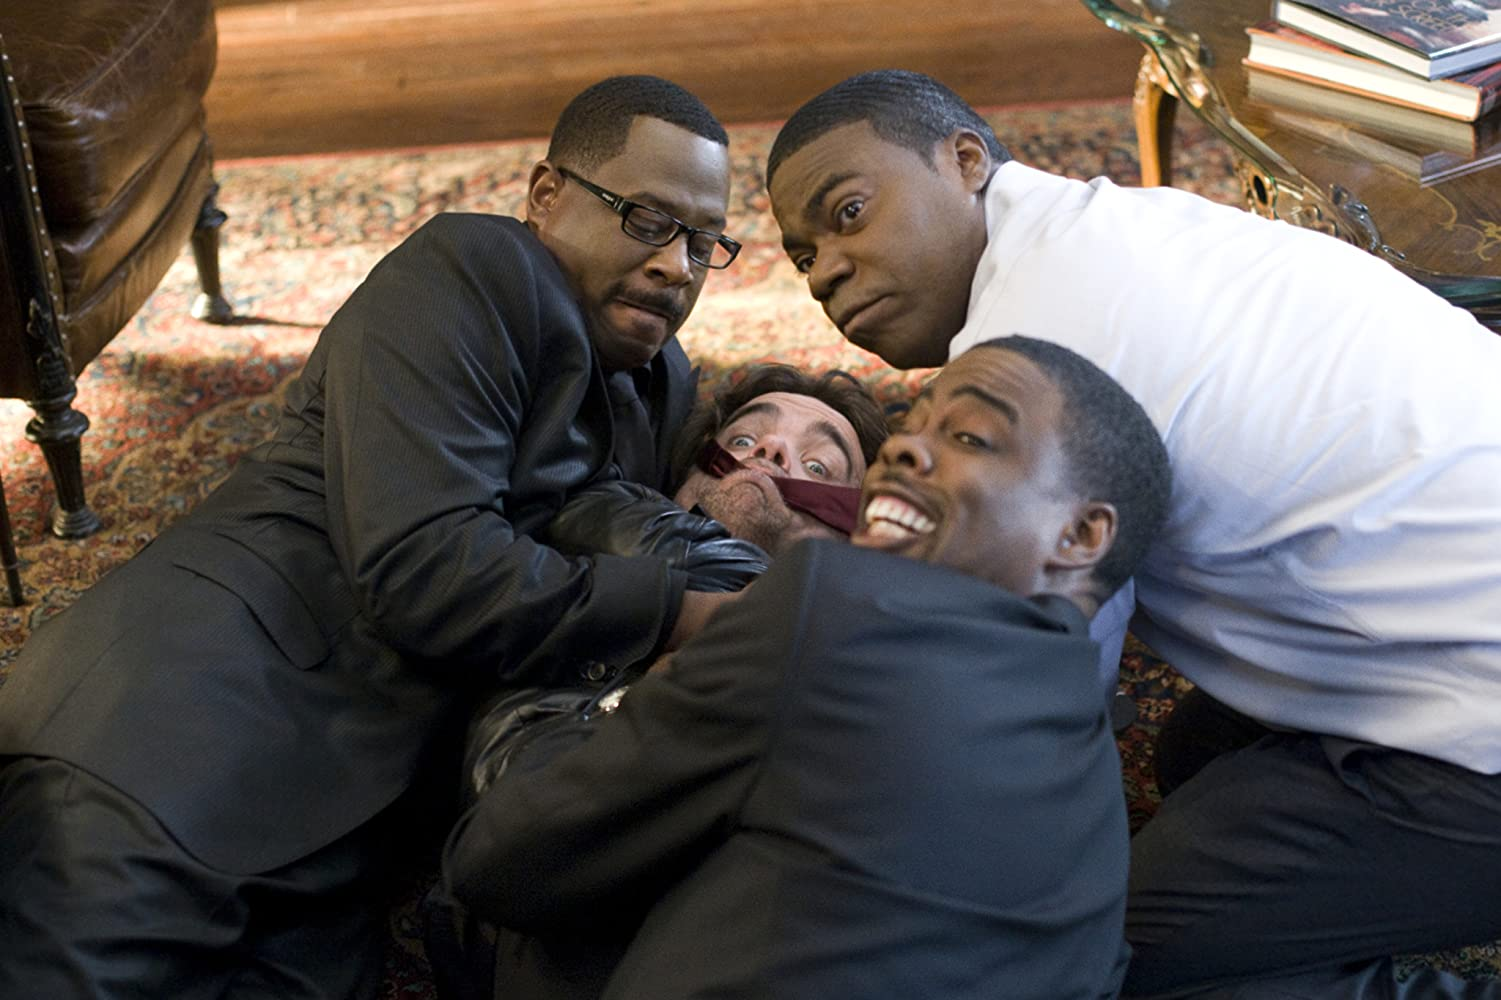 Martin Lawrence, Chris Rock, Peter Dinklage, and Tracy Morgan in Death at a Funeral (2010)